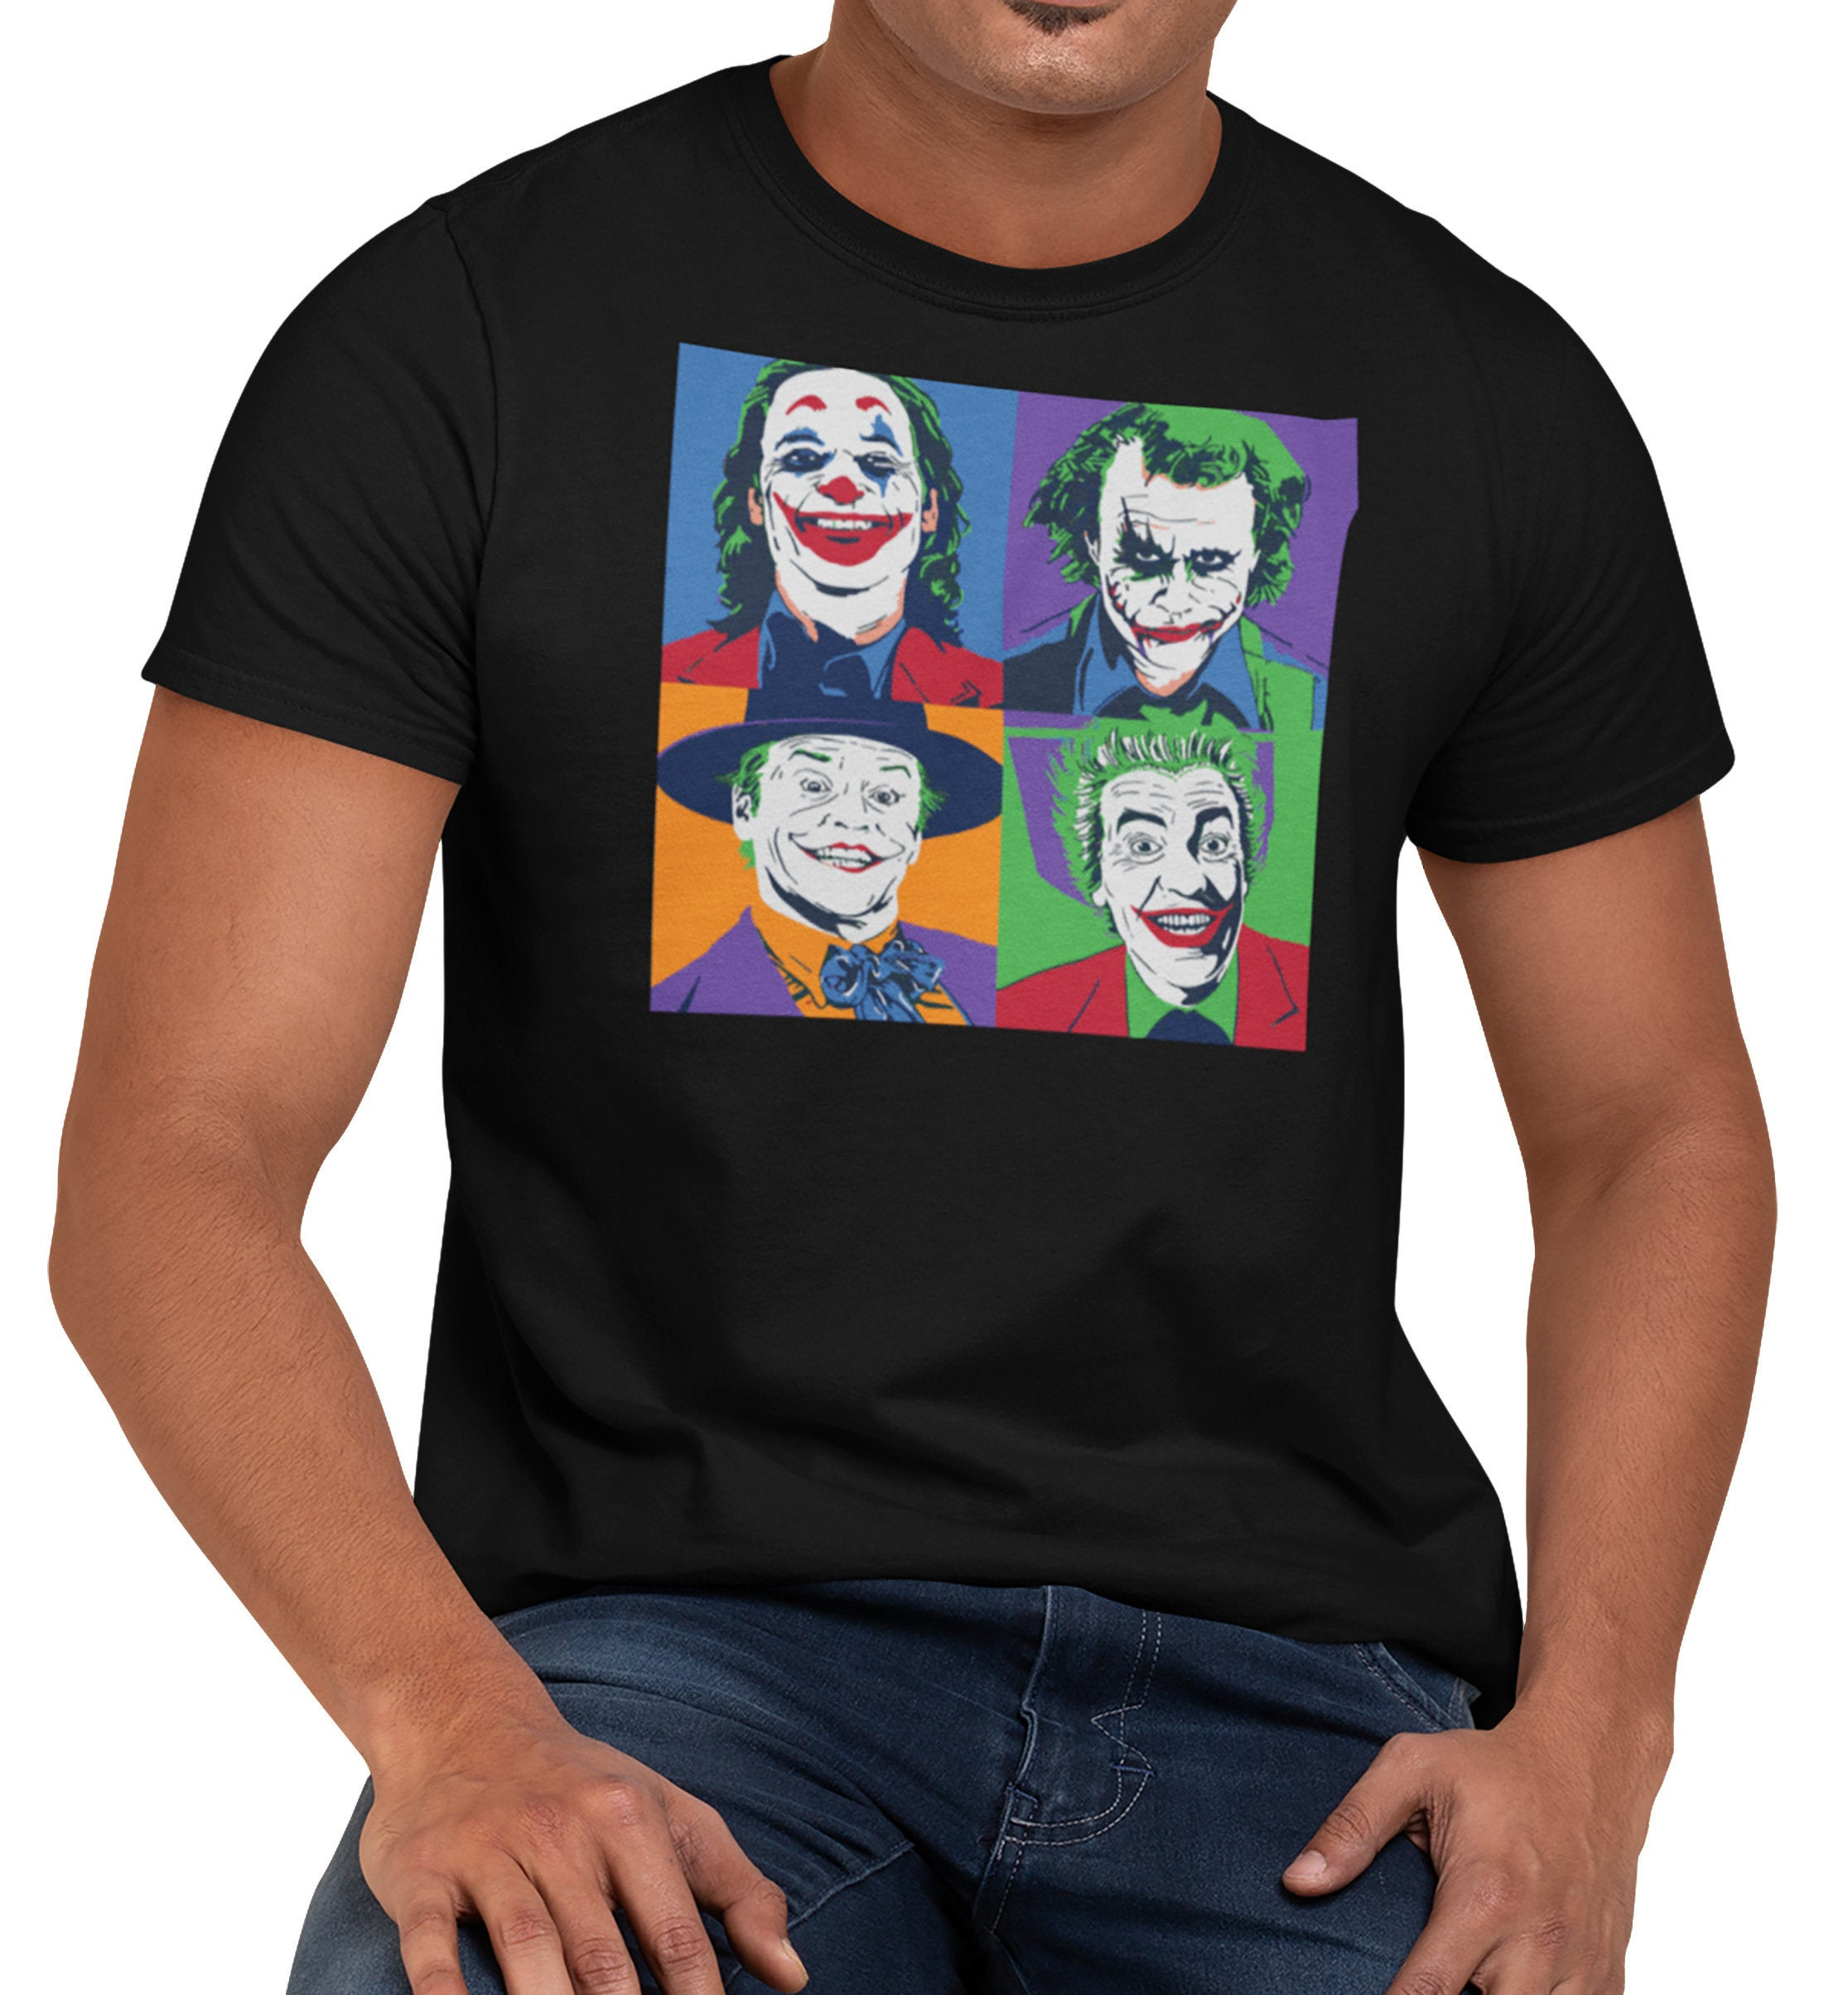 The Joker POP ART Comic Book T-Shirt Unisex Men's Shirt